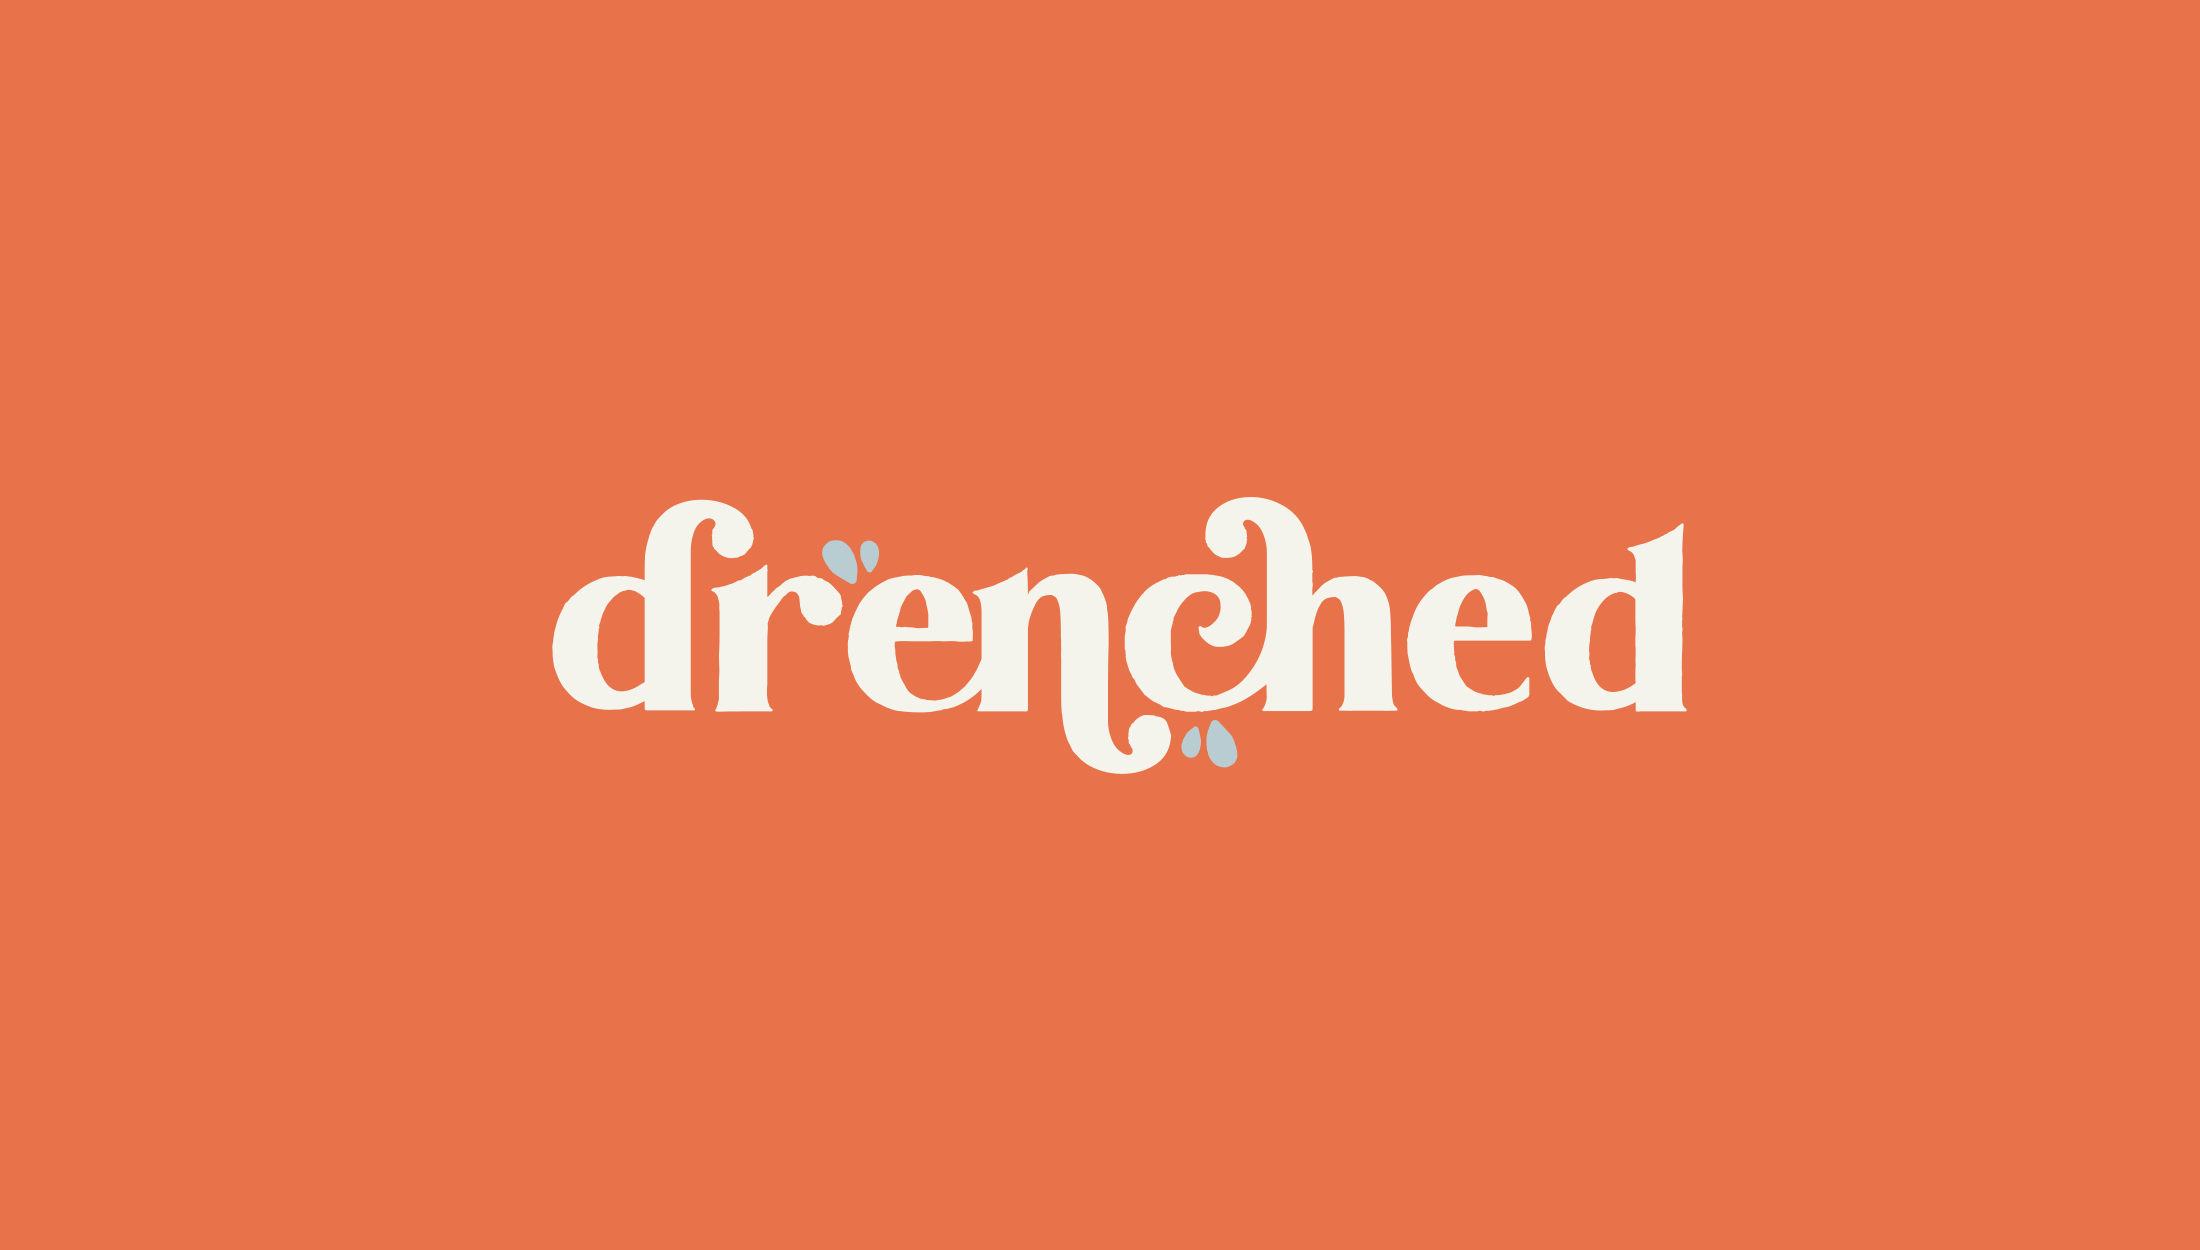 Logo design for Drenched, selling luxury products that are essential for water-based needs - designed by Wiltshire-based graphic designer, Kaye Huett